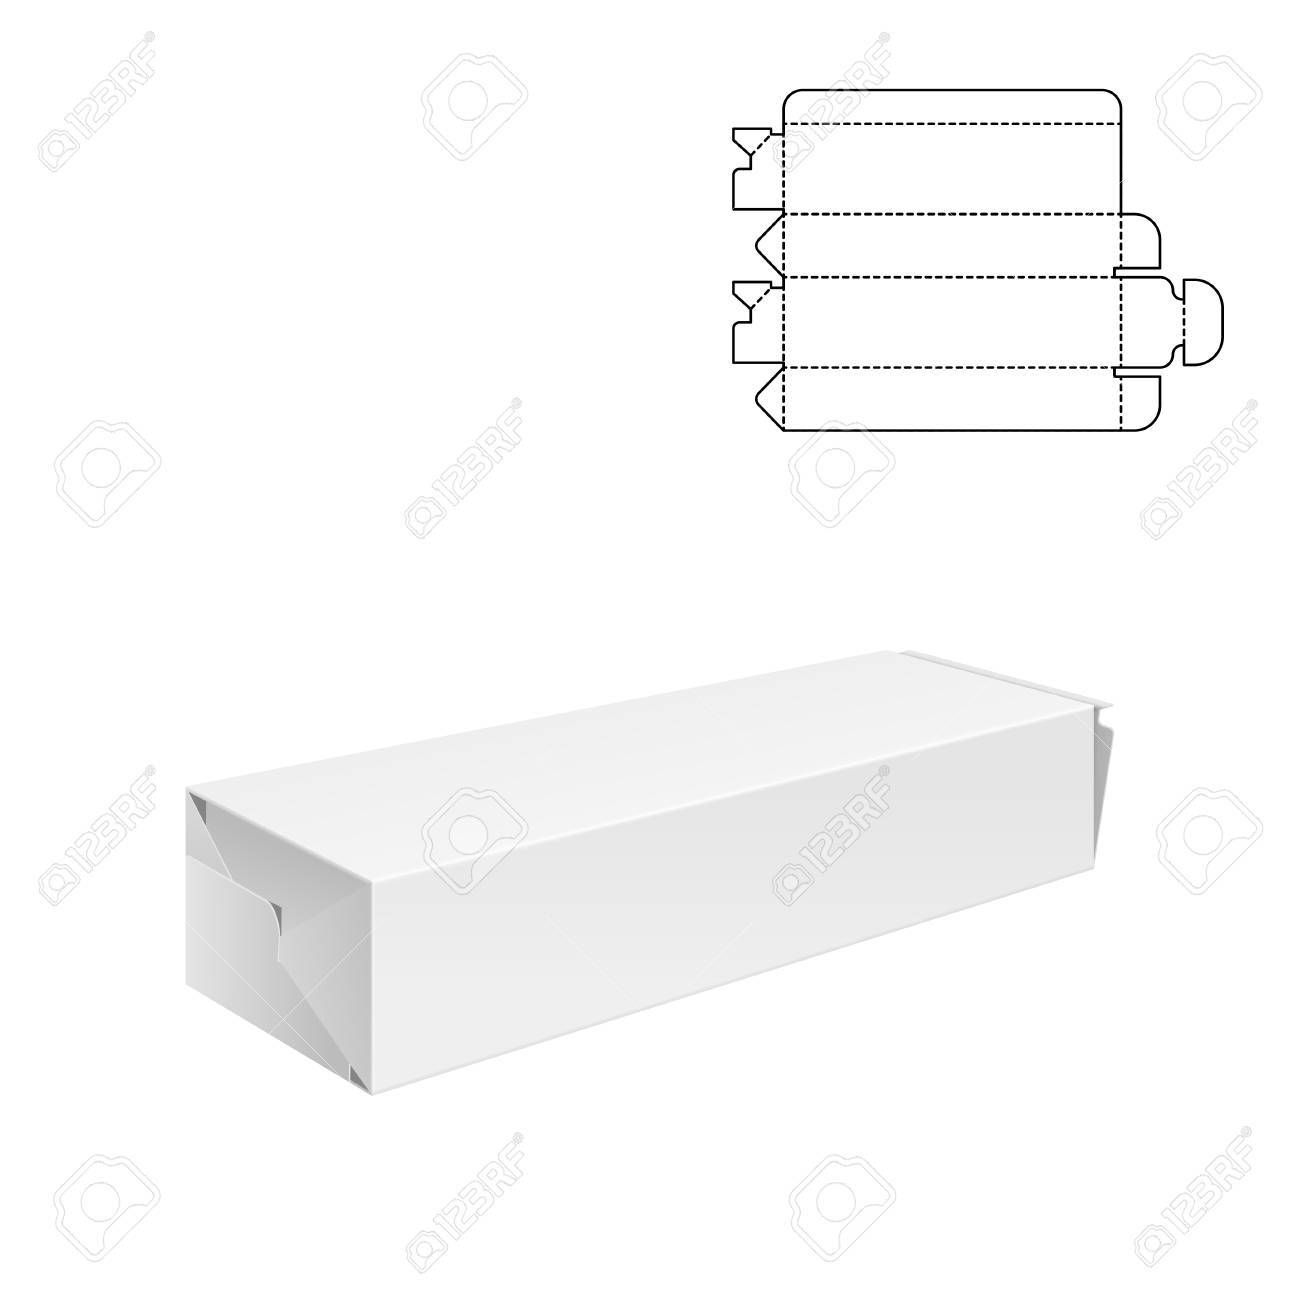 Vector Illustration of Diecut Craft Box for Design, Website, Background, Banner. Retail Folding package Template. Fold pack with dieline for your brand on it - 59868554